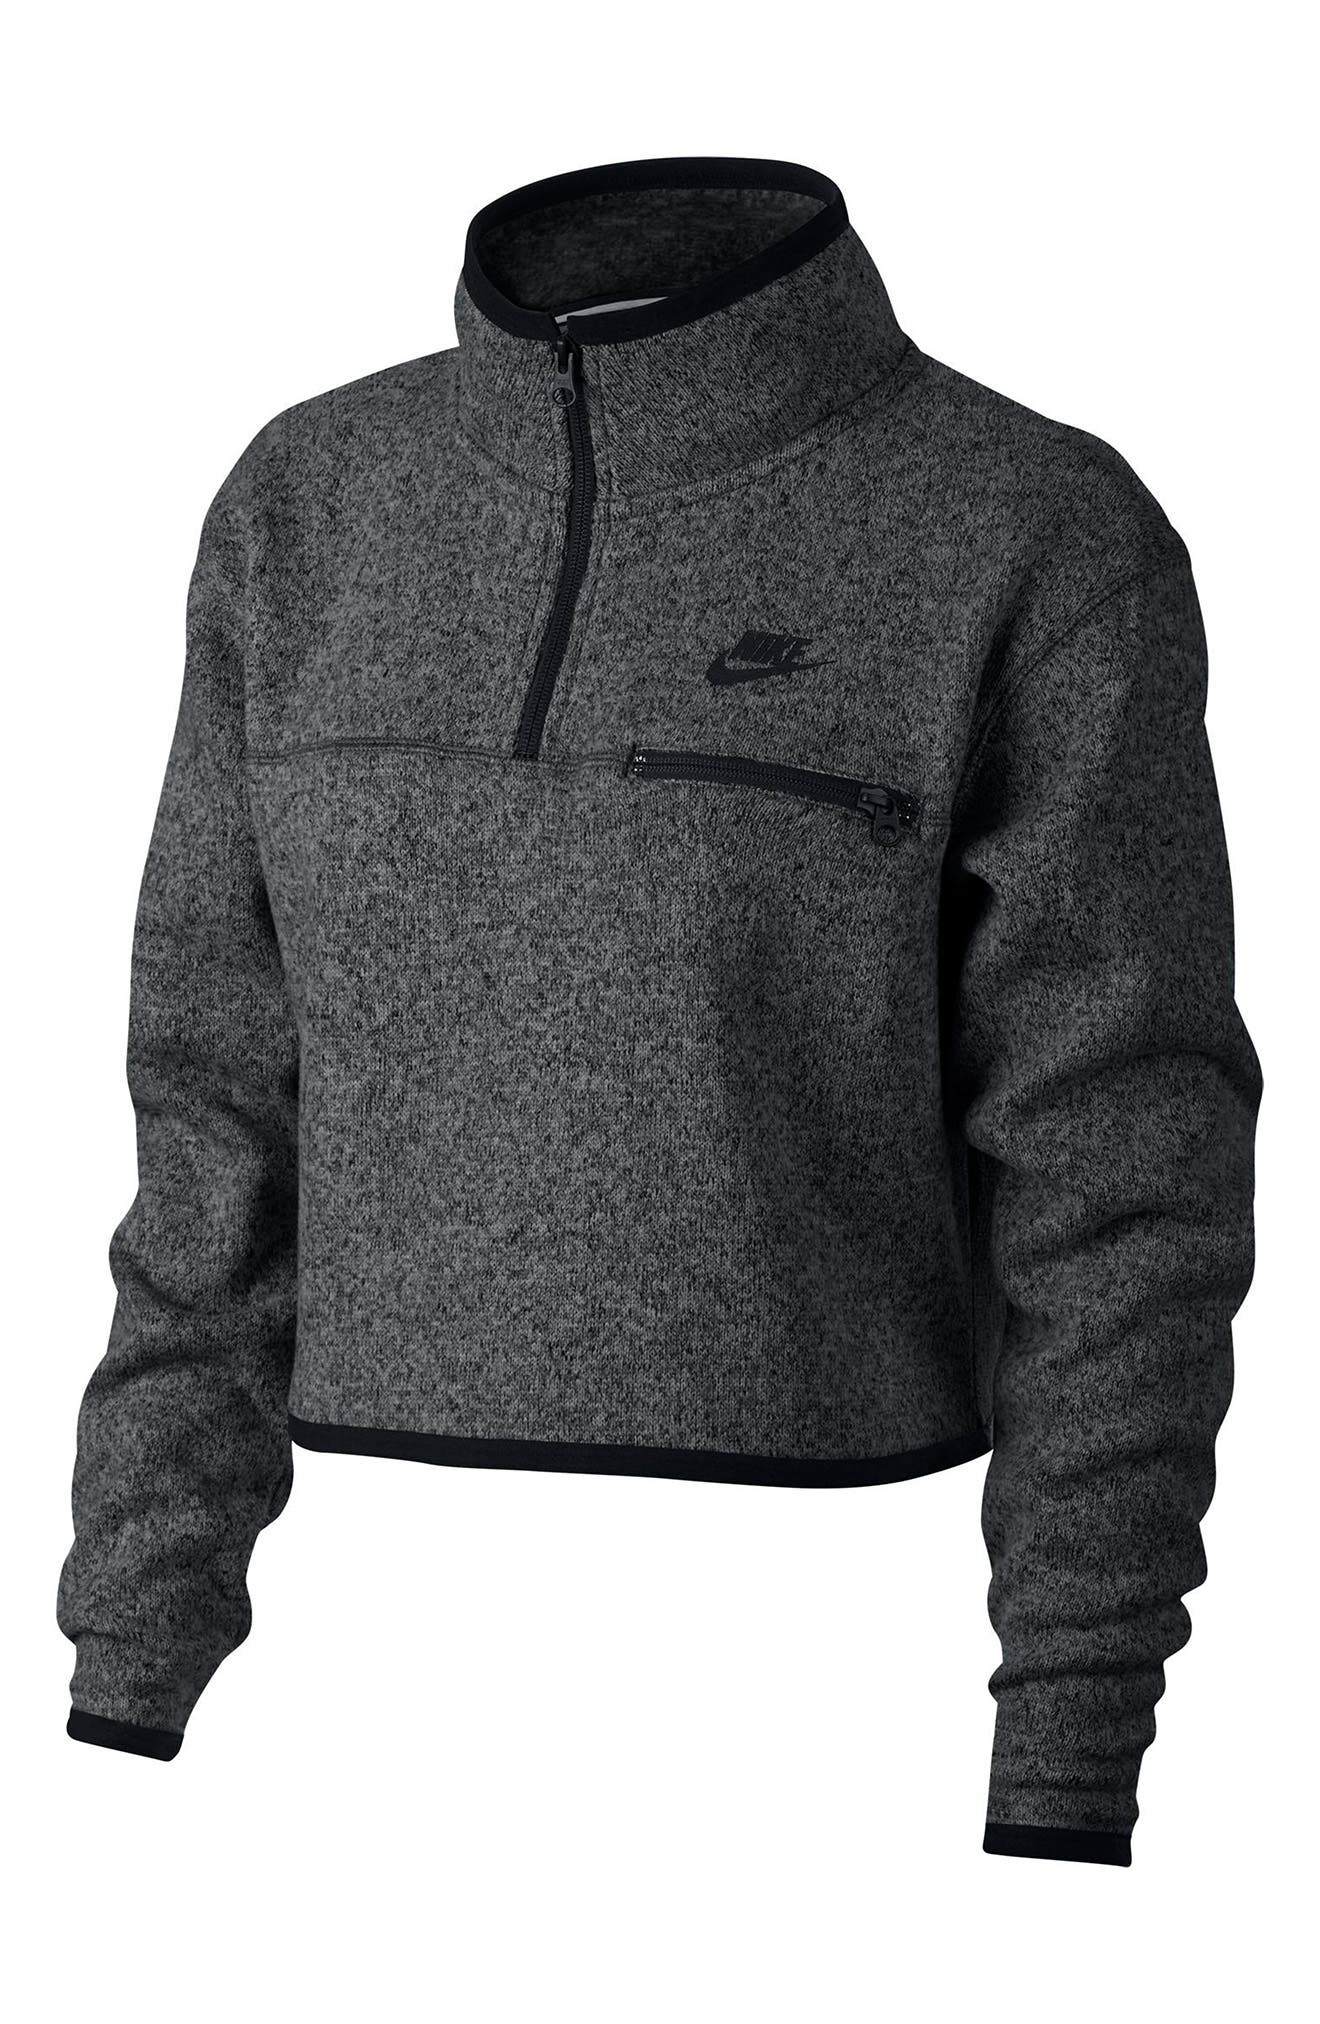 Nike Sportswear Women's Half Zip Knit Top